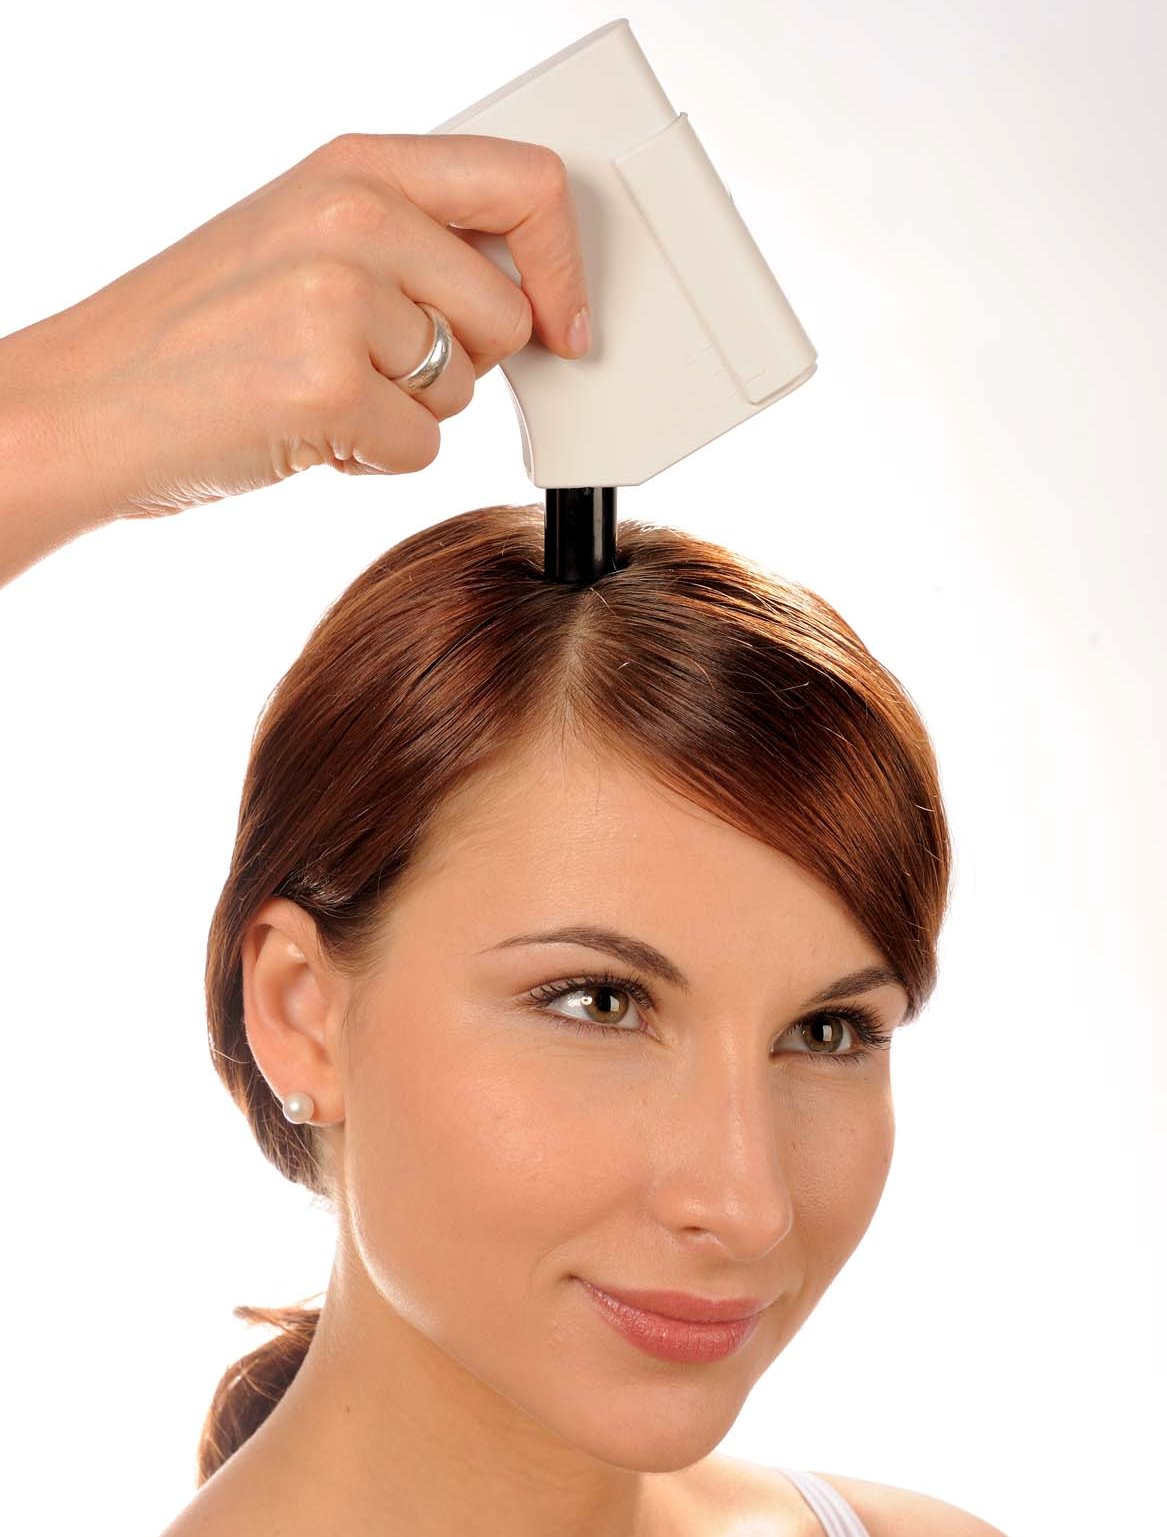 Sebumeter® can be used on hair and scalp